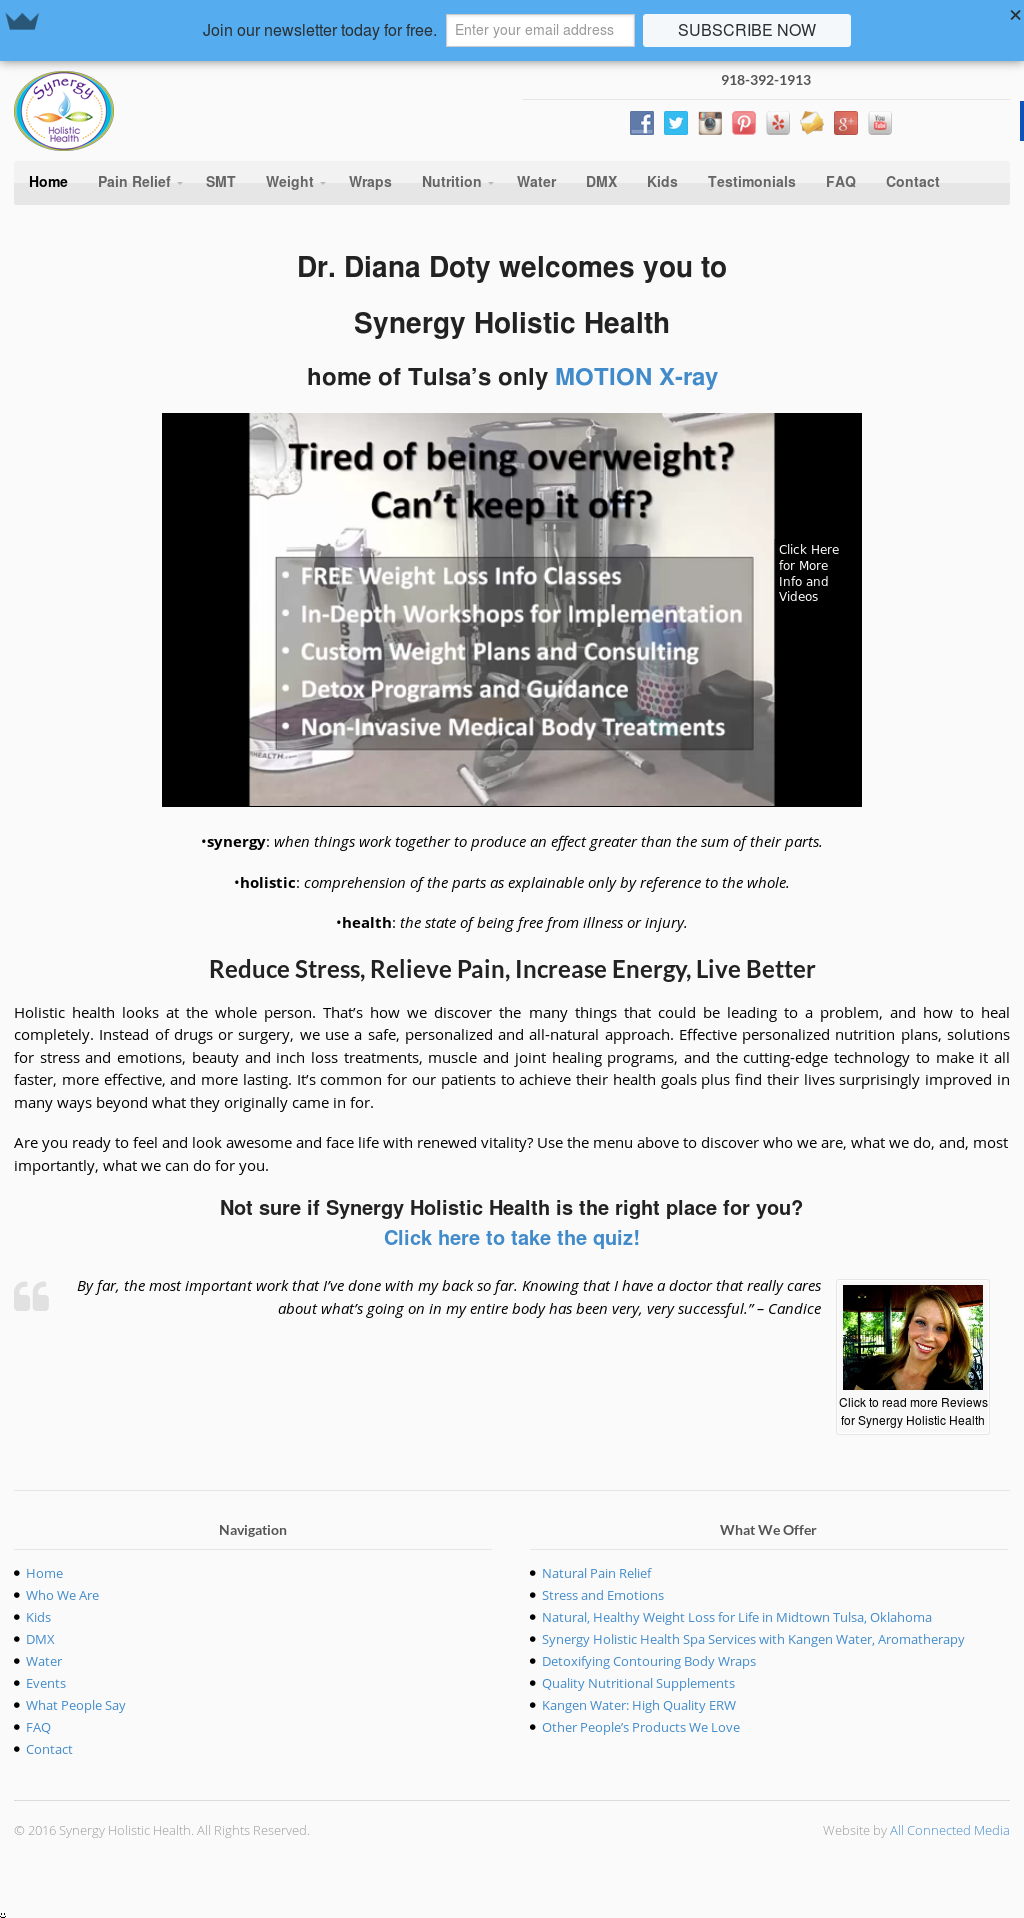 Synergy Holistic Health Competitors, Revenue and Employees